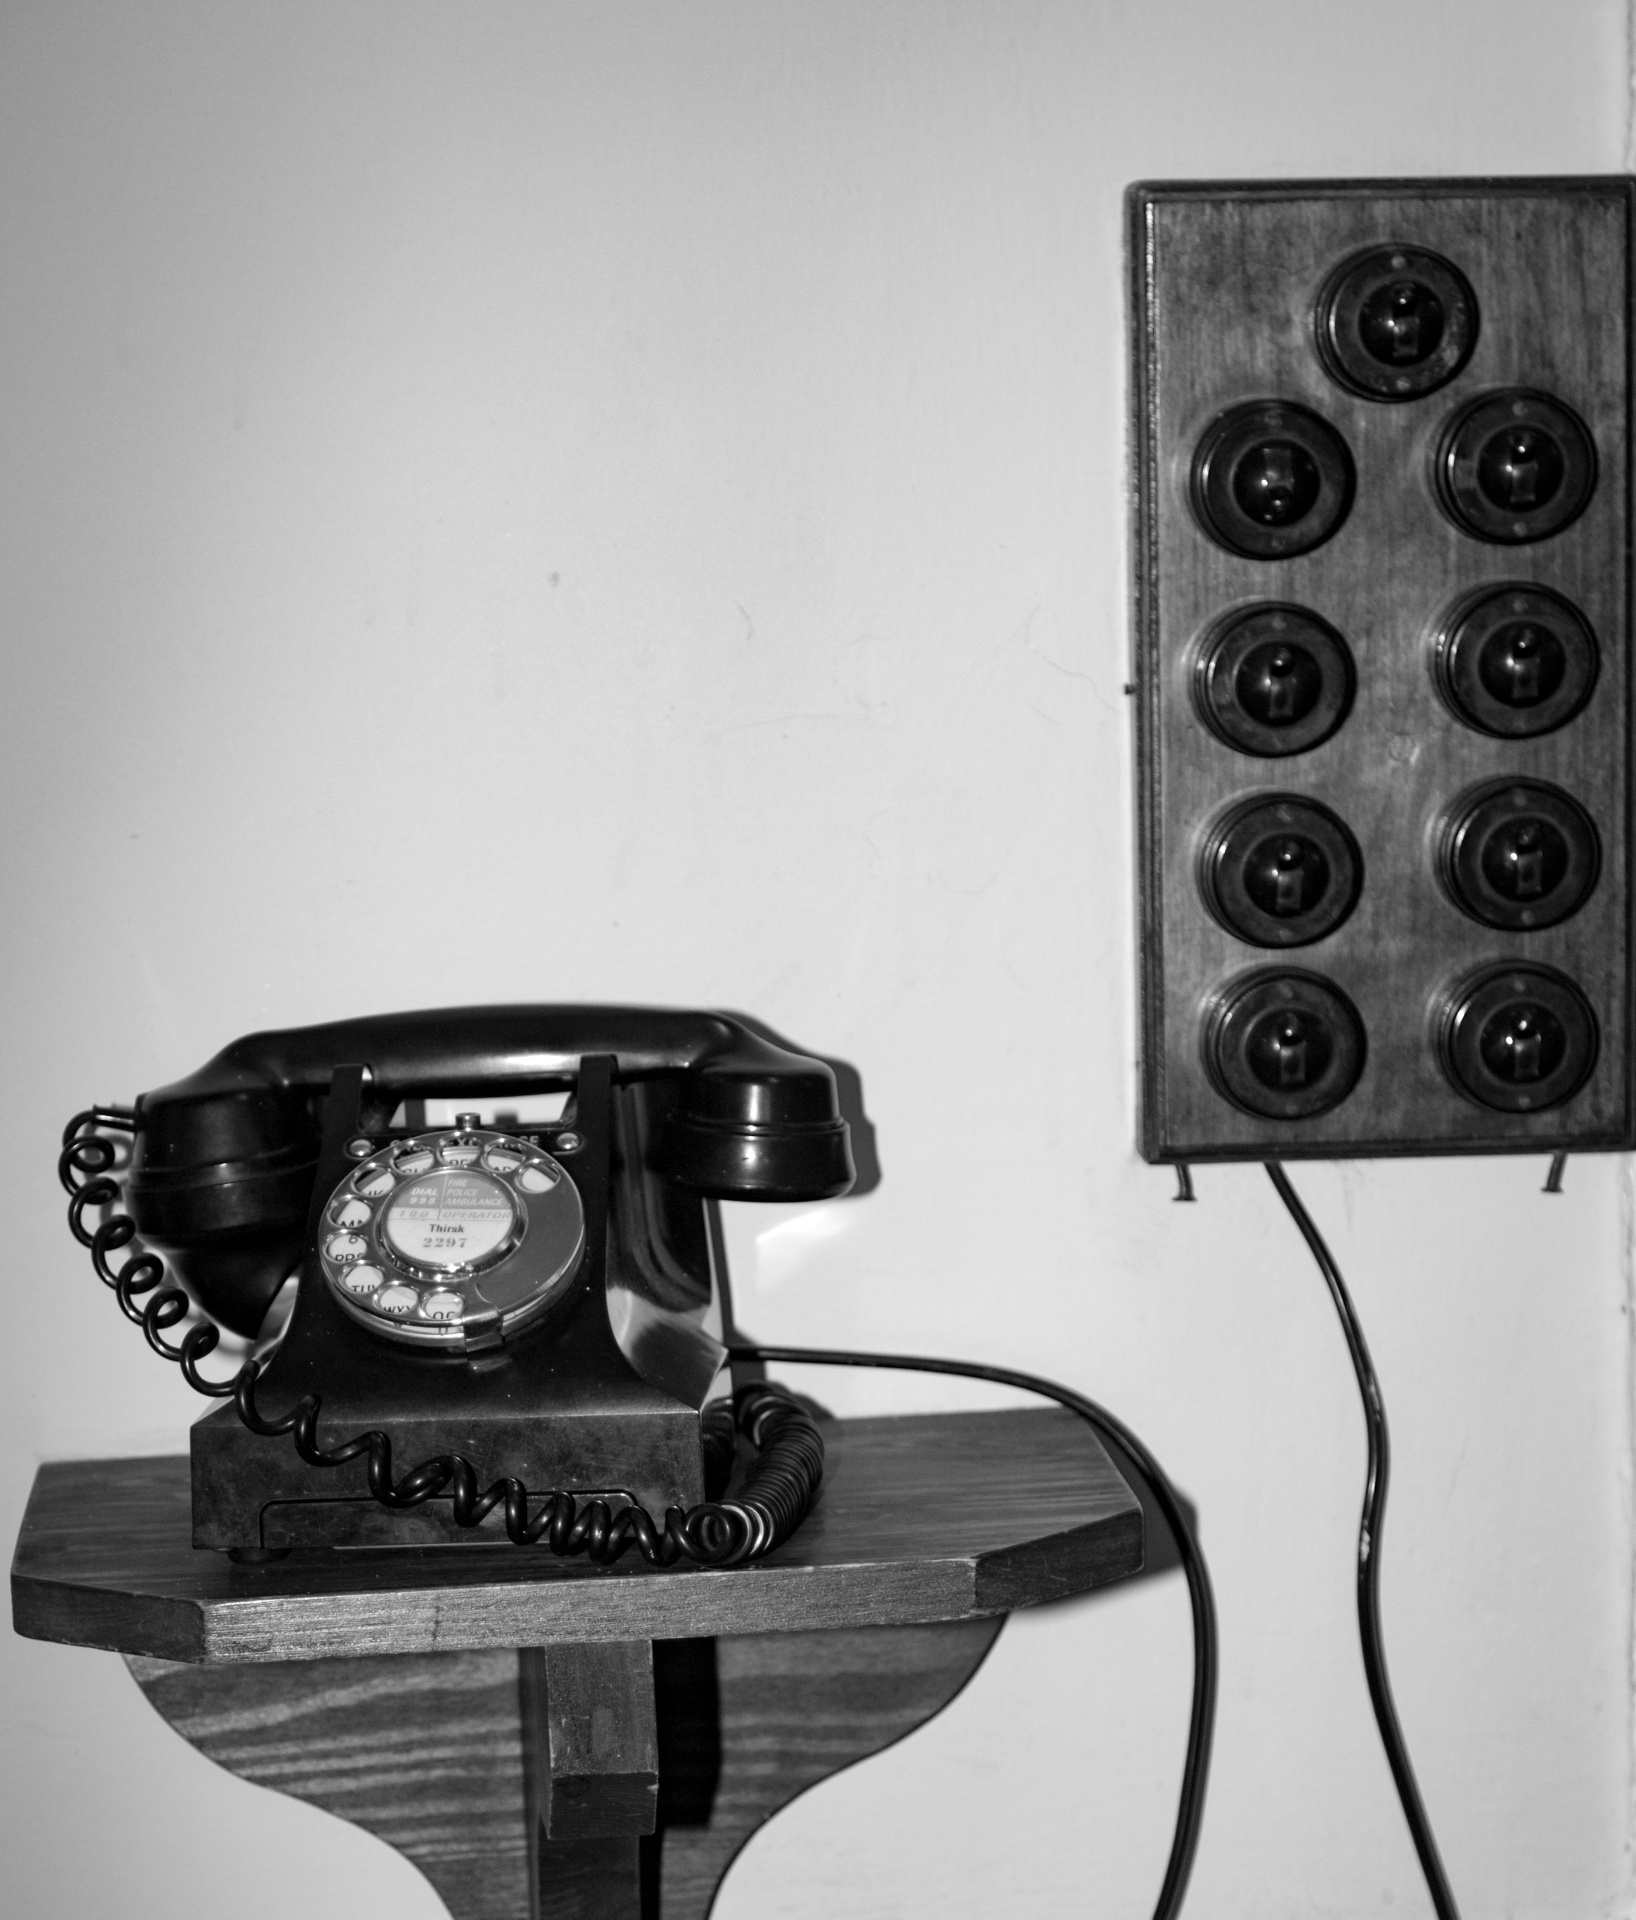 telecommunications, telephone, phone, Alexander Graham Bell